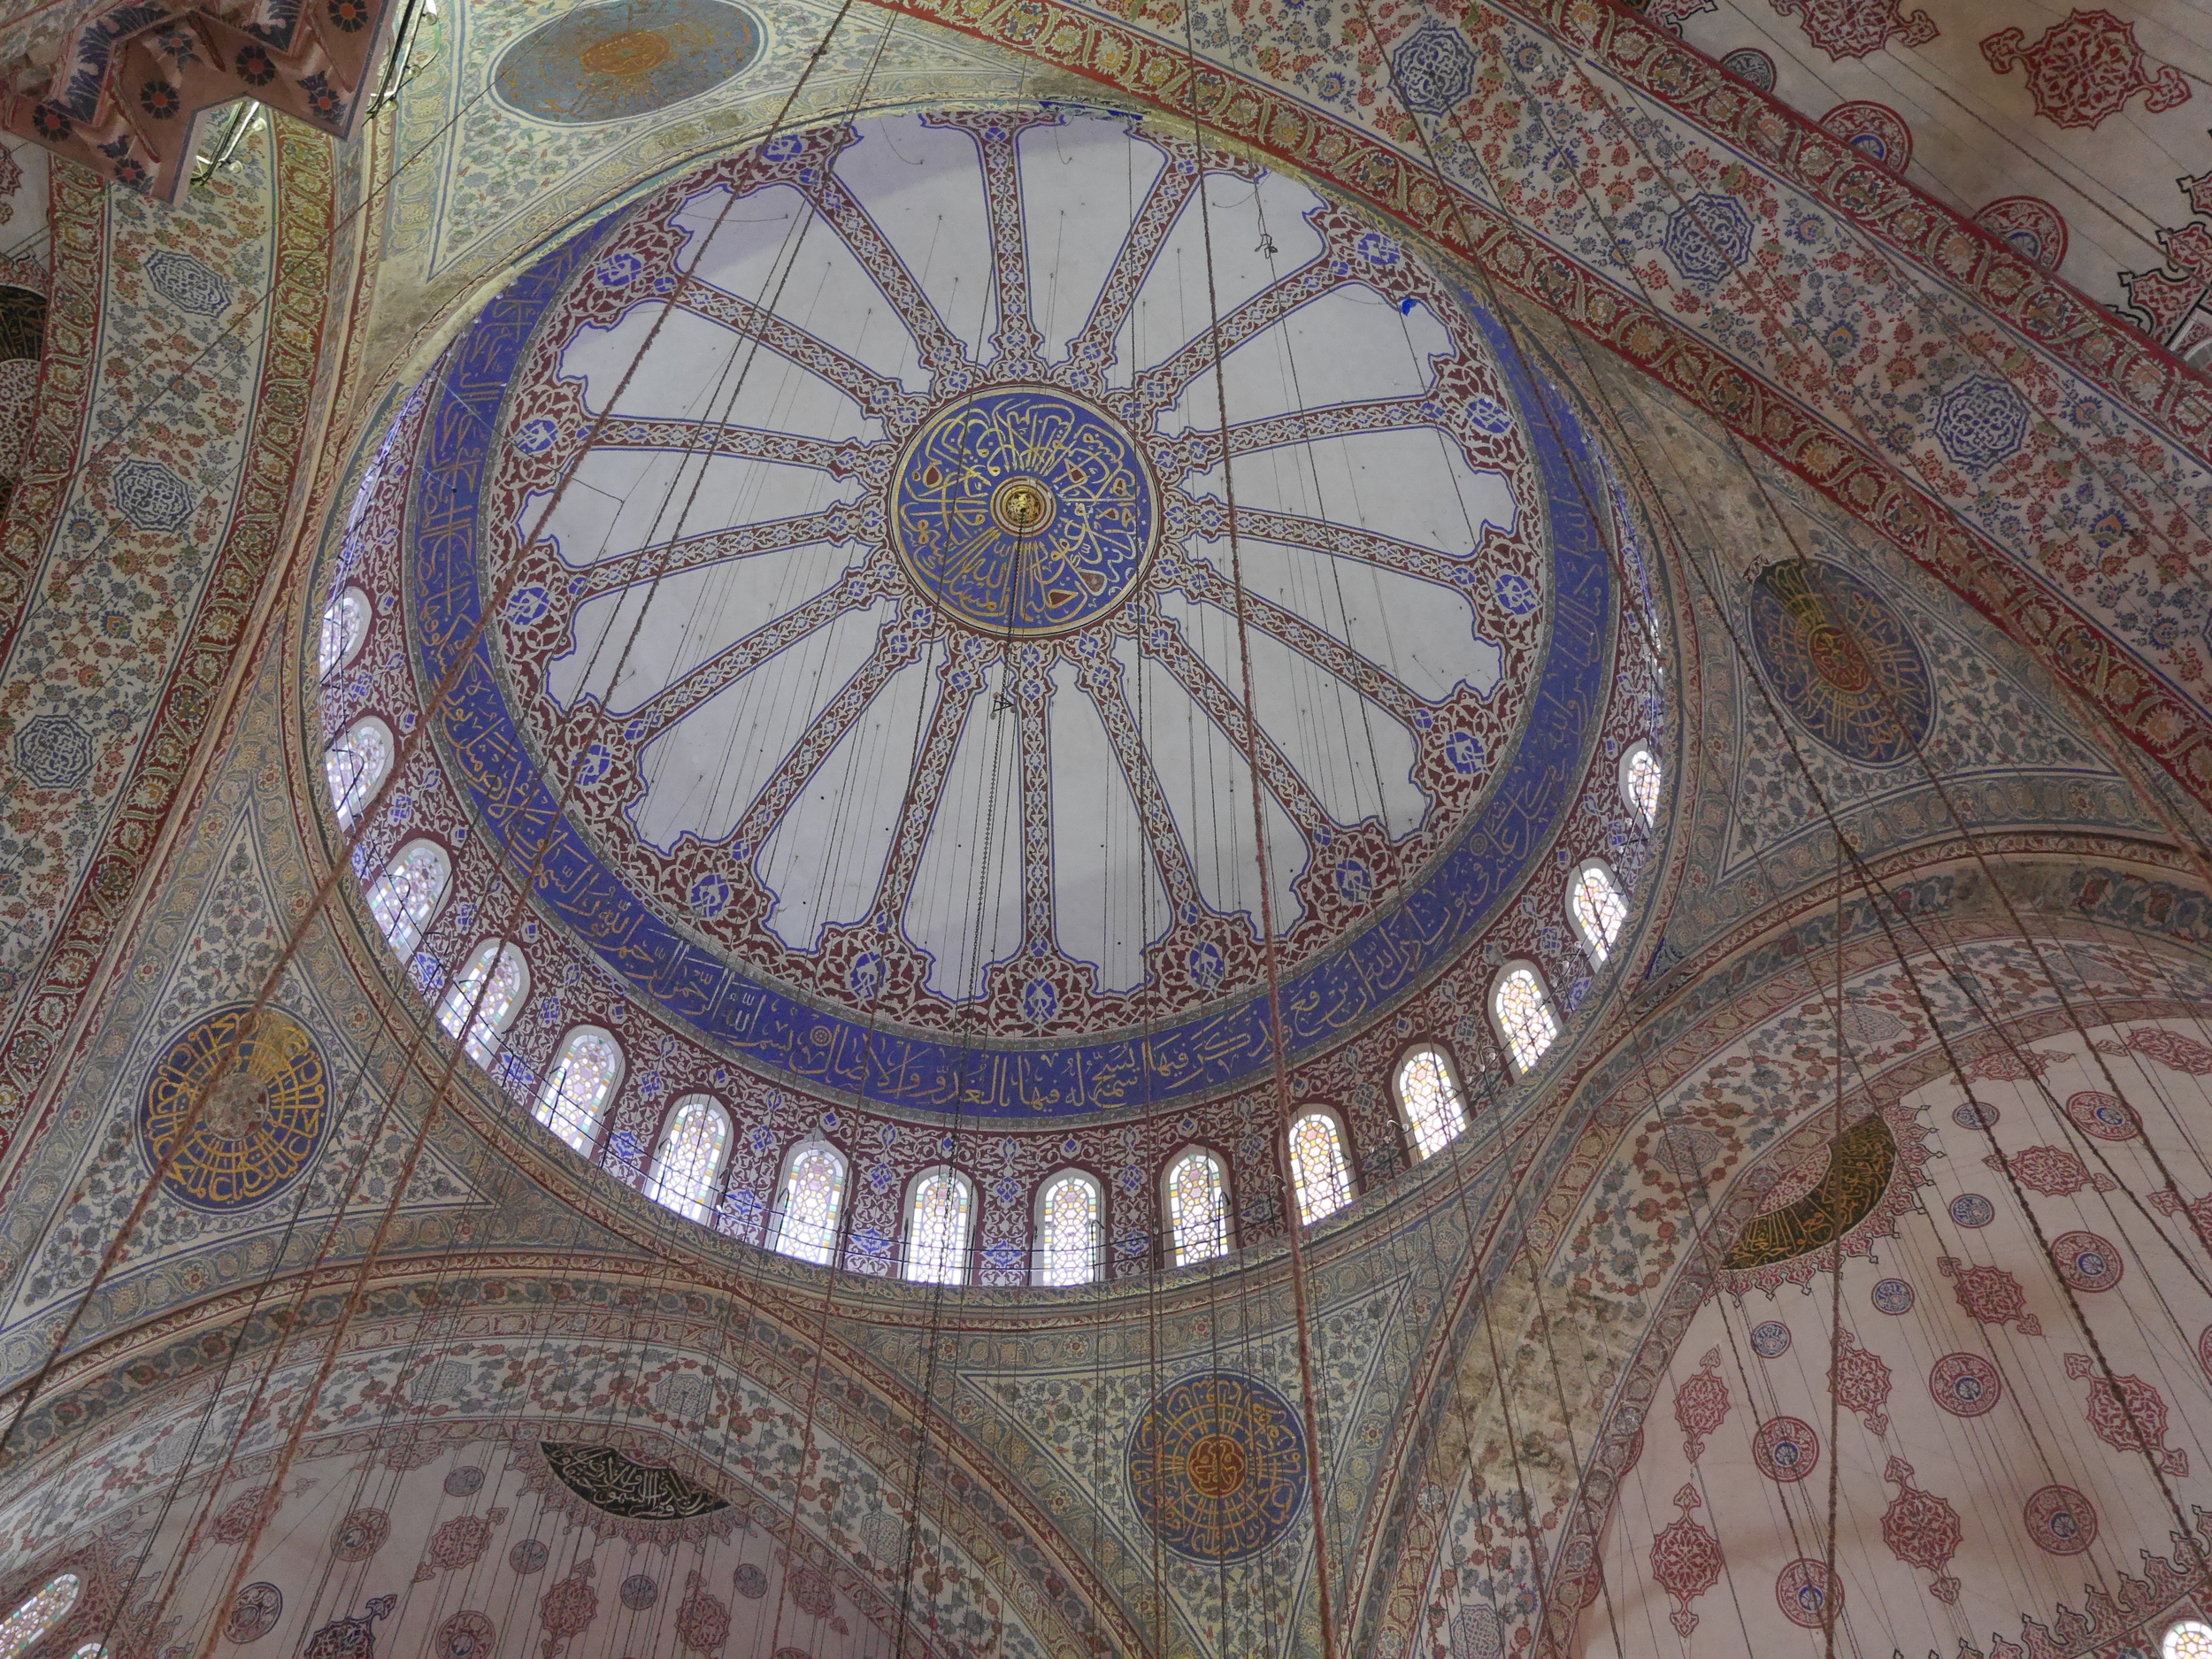 The ceiling inside the Blue Mosque. All the wires are for lighting. So many wires.